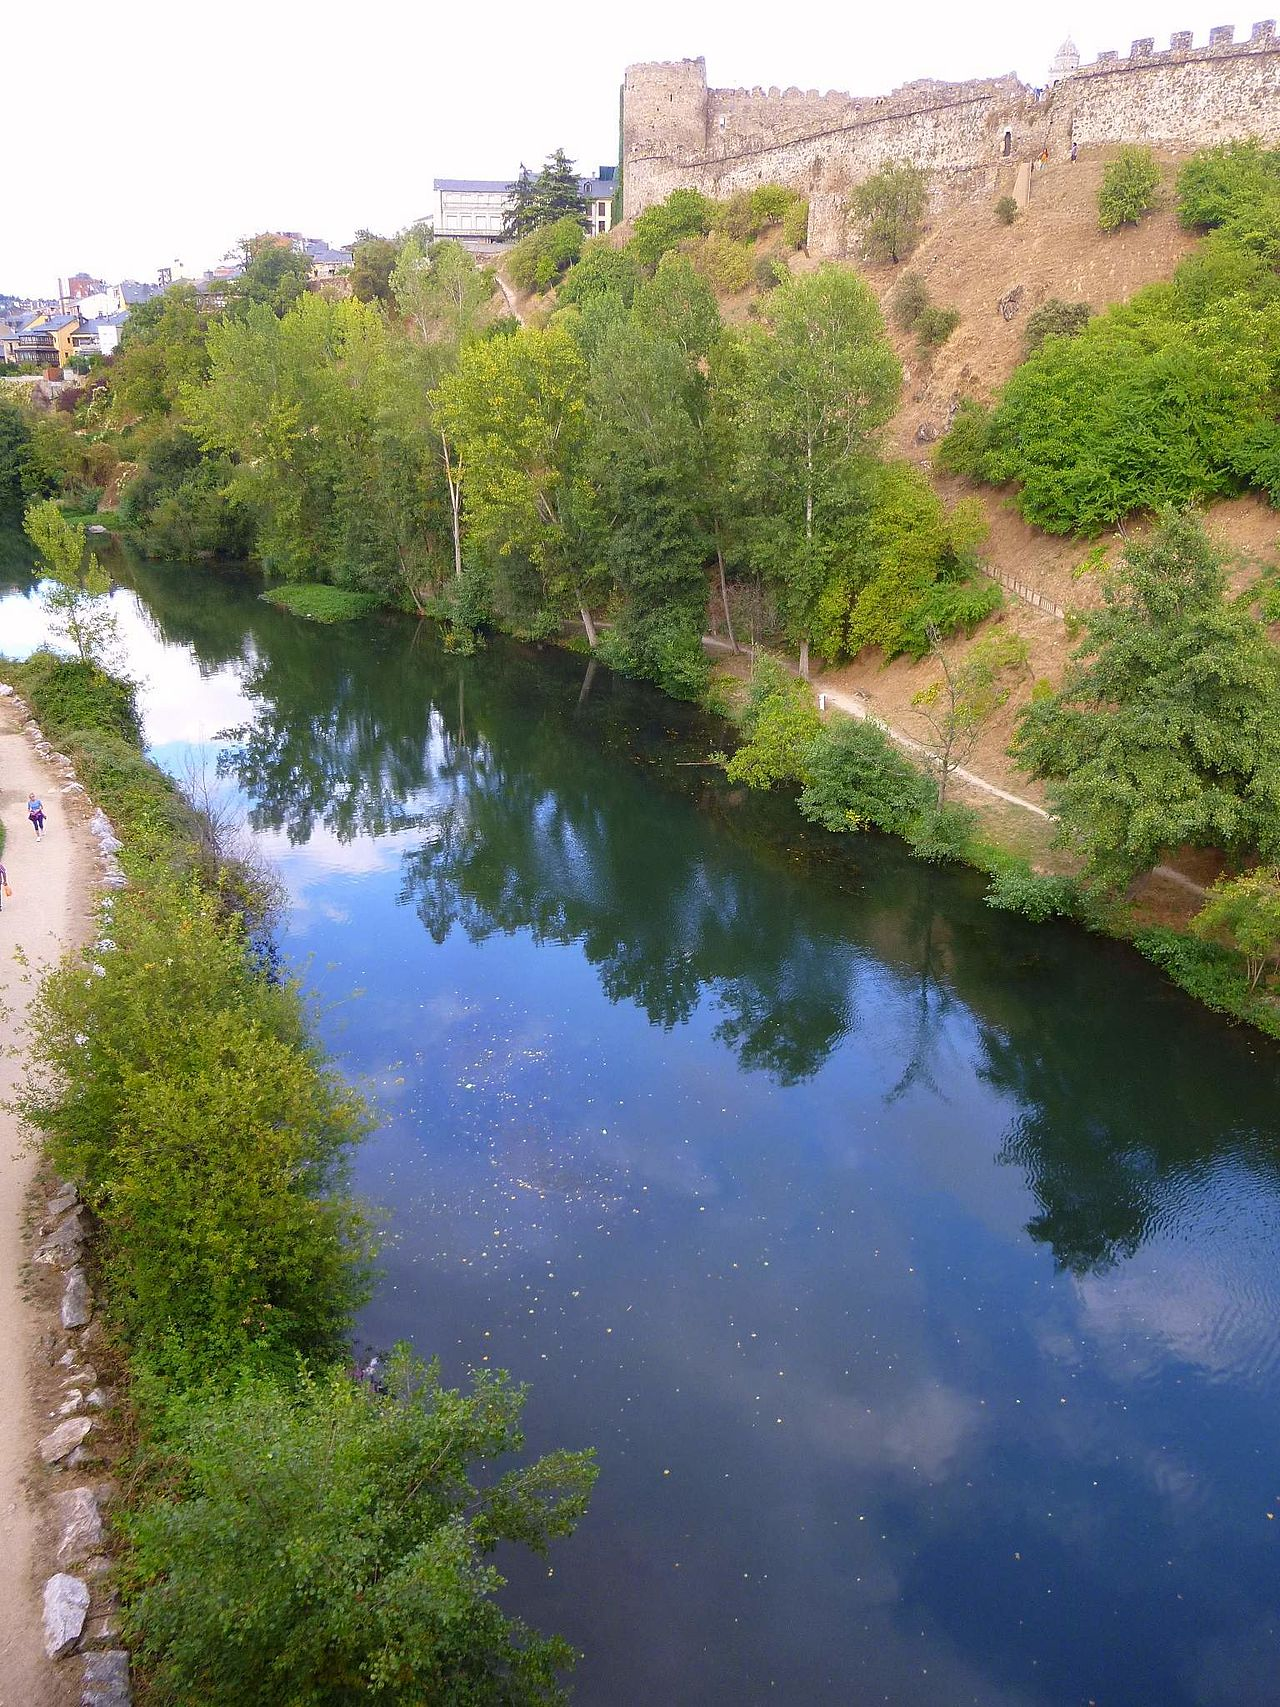 Ponferrada Río Sil River, Outdoor, Spain